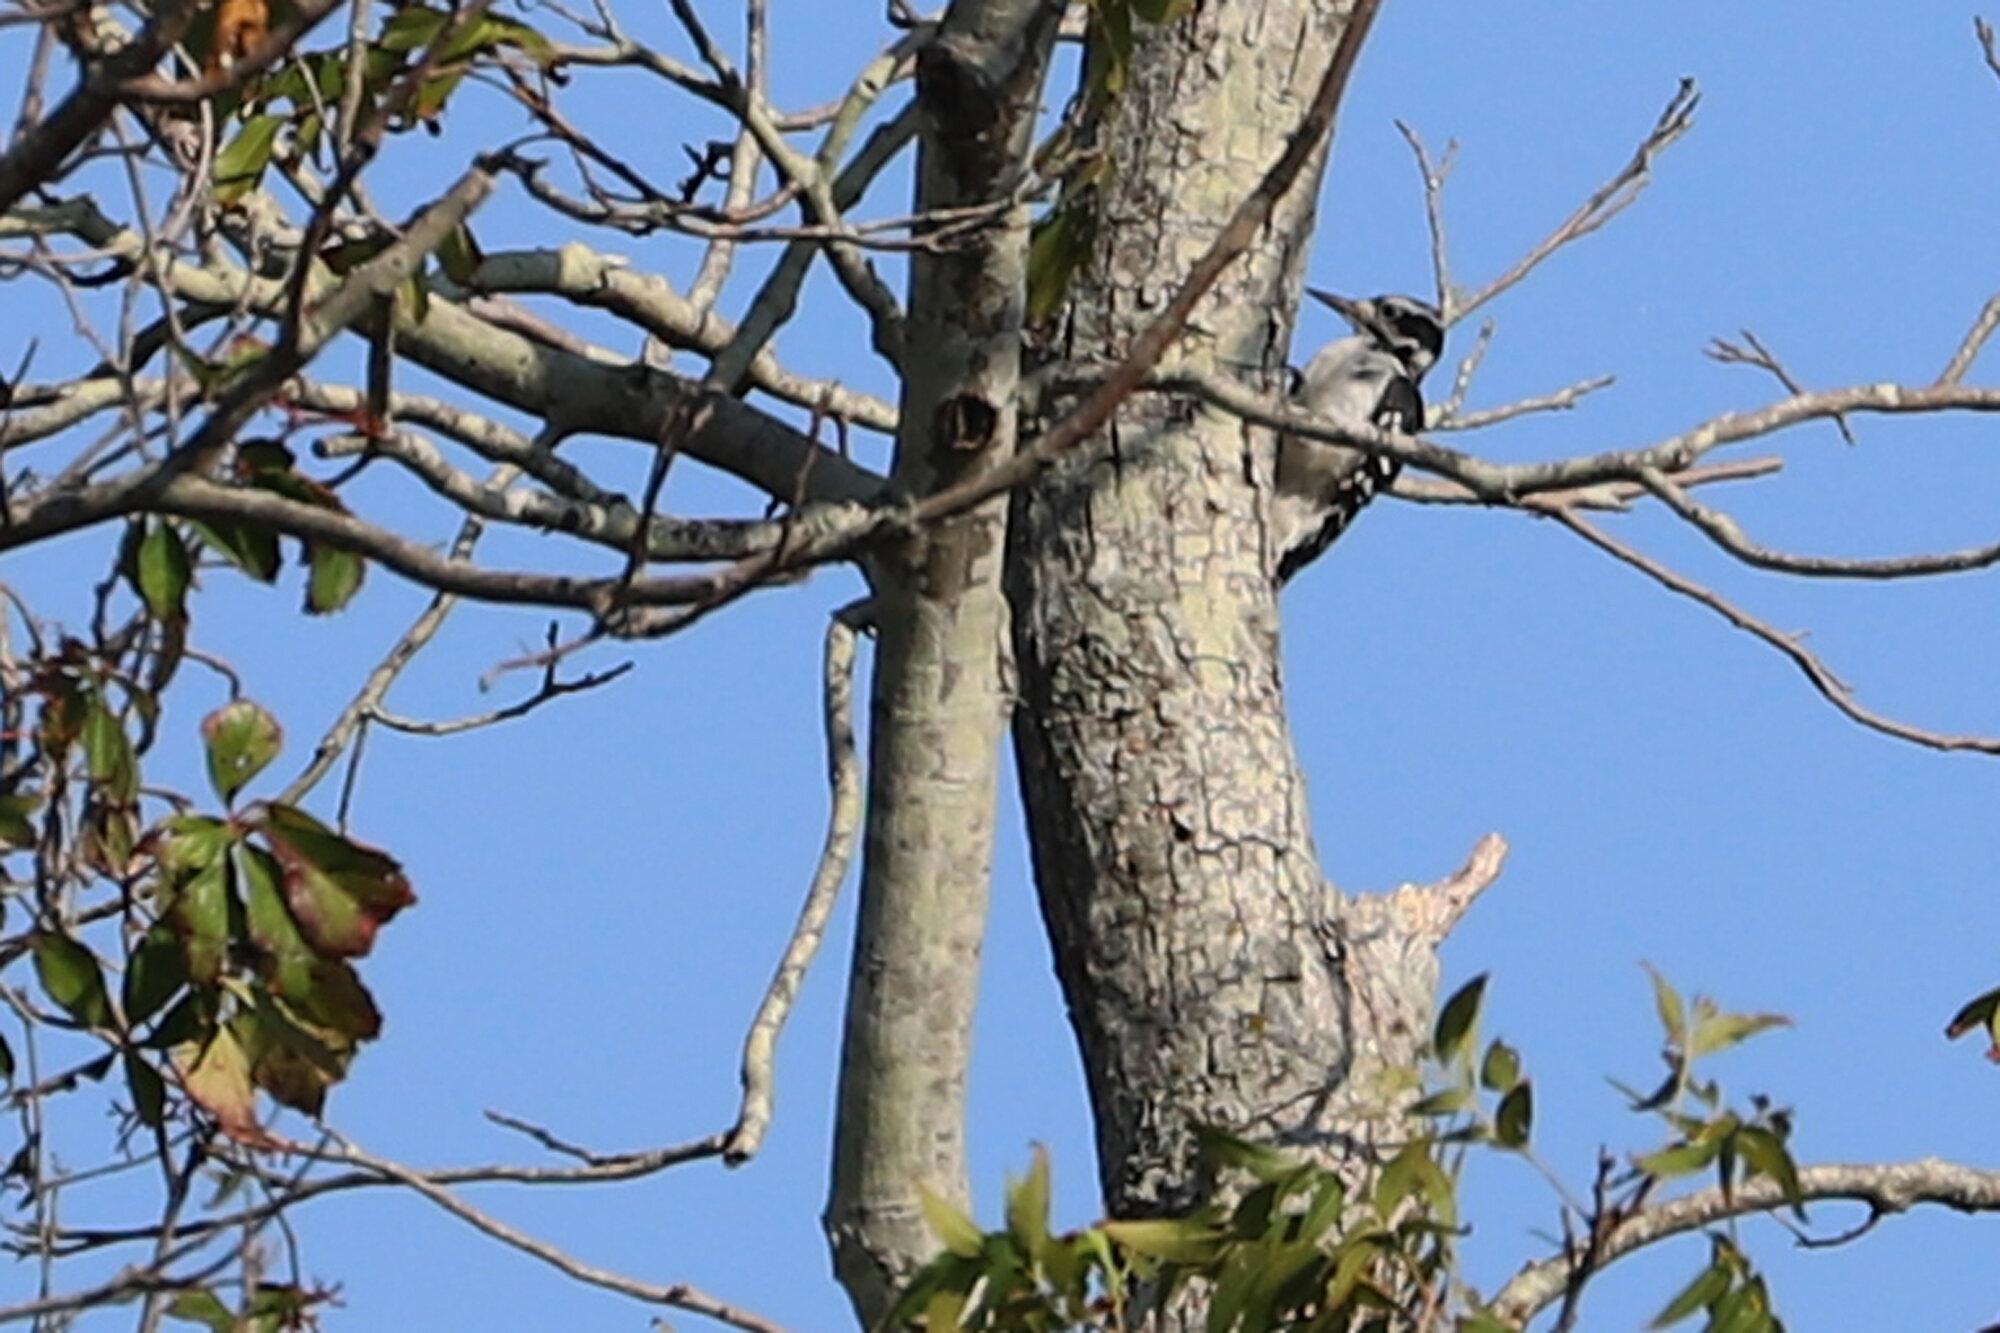 Hairy Woodpecker / Princess Anne WMA Whitehurst Tract / 1 Sep